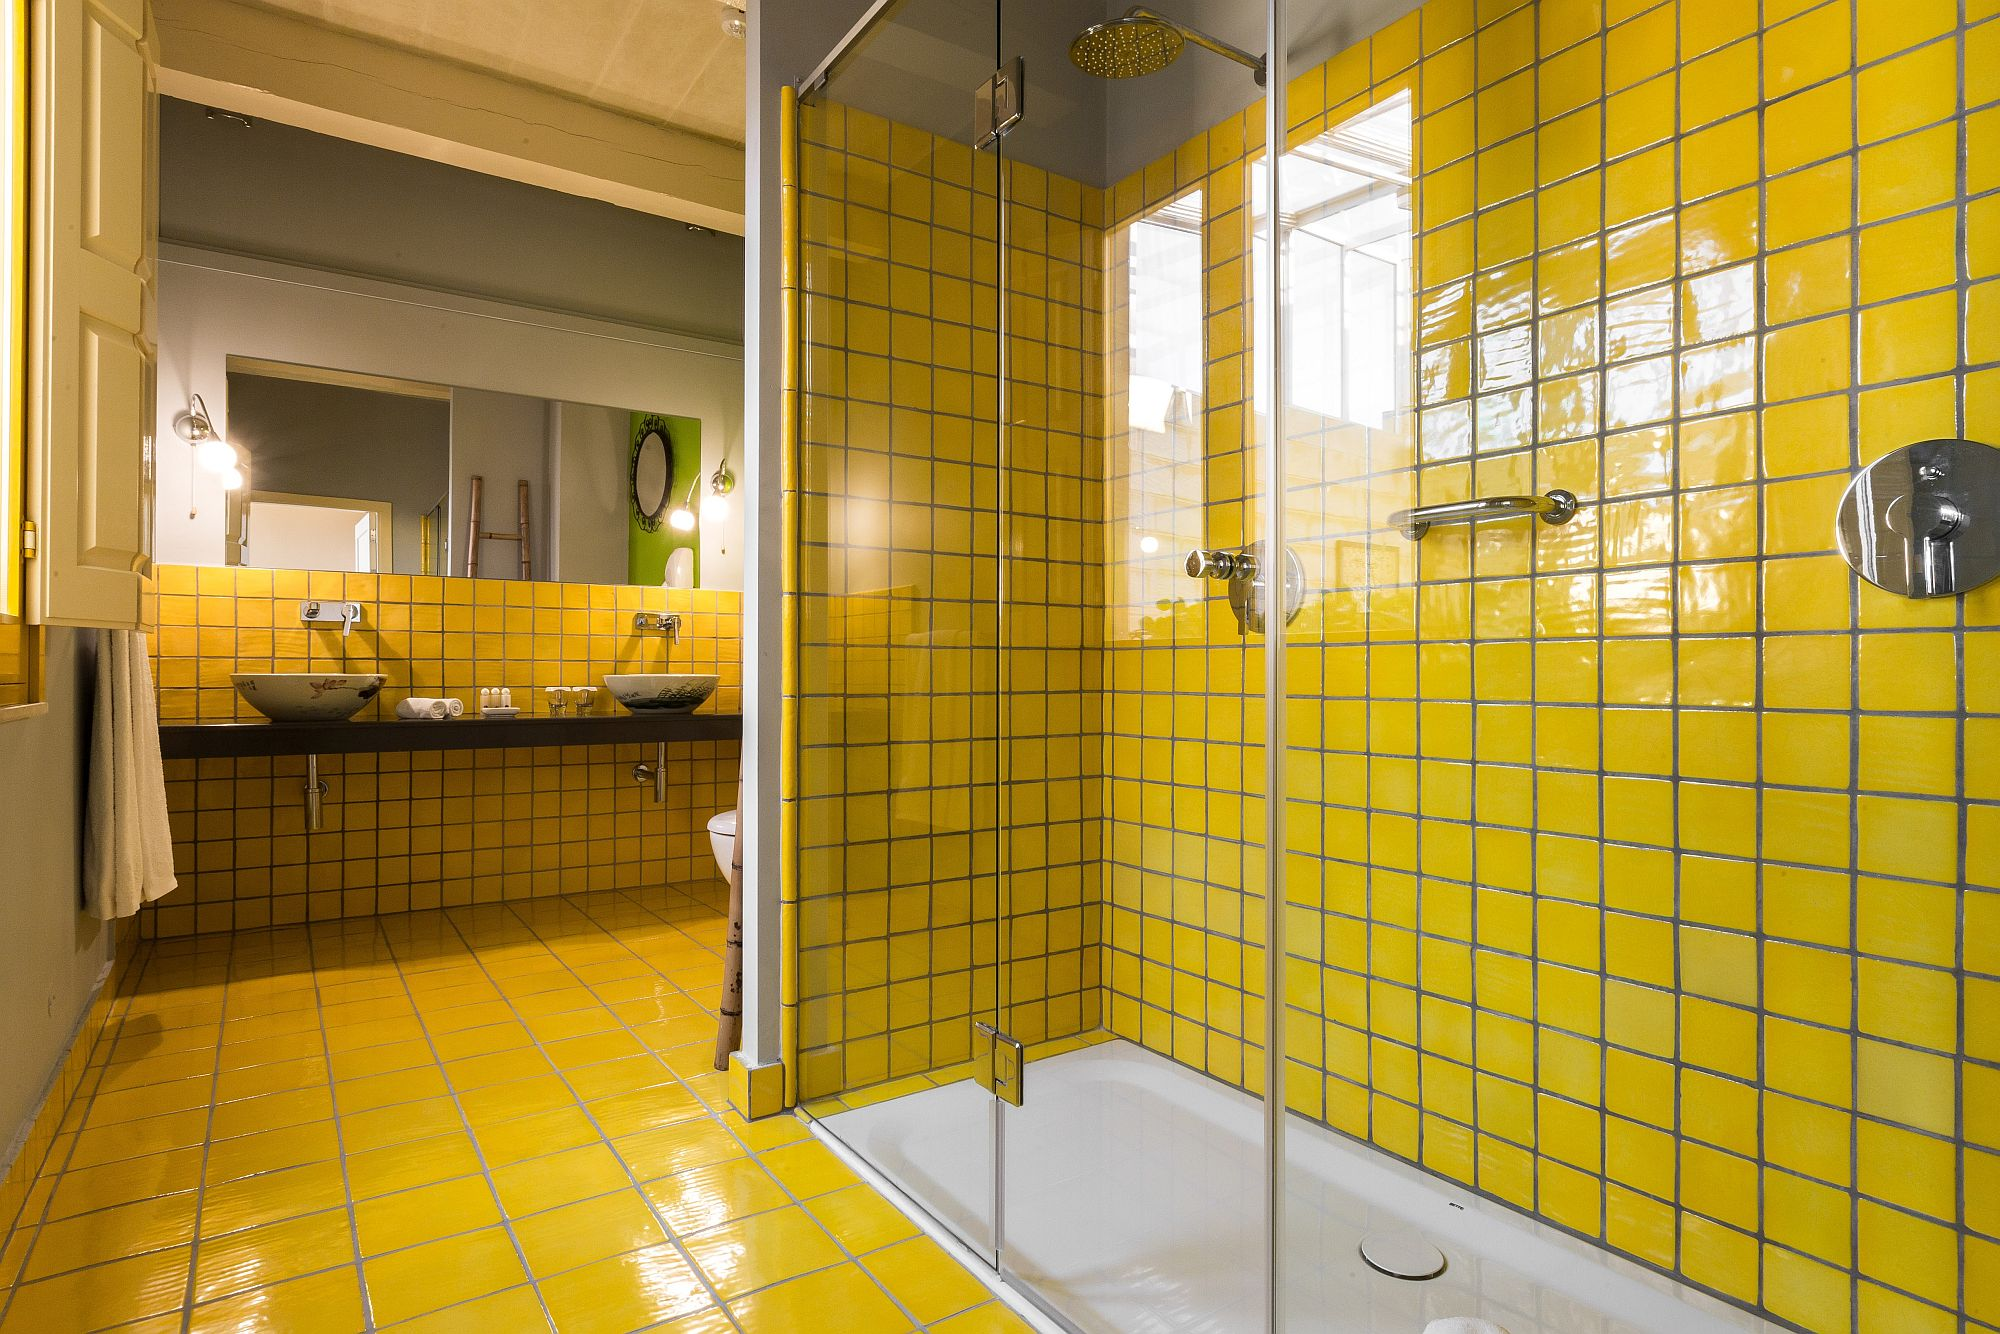 Fabulous-bathroom-draped-in-yellow-tiles-and-filled-with-natural-light